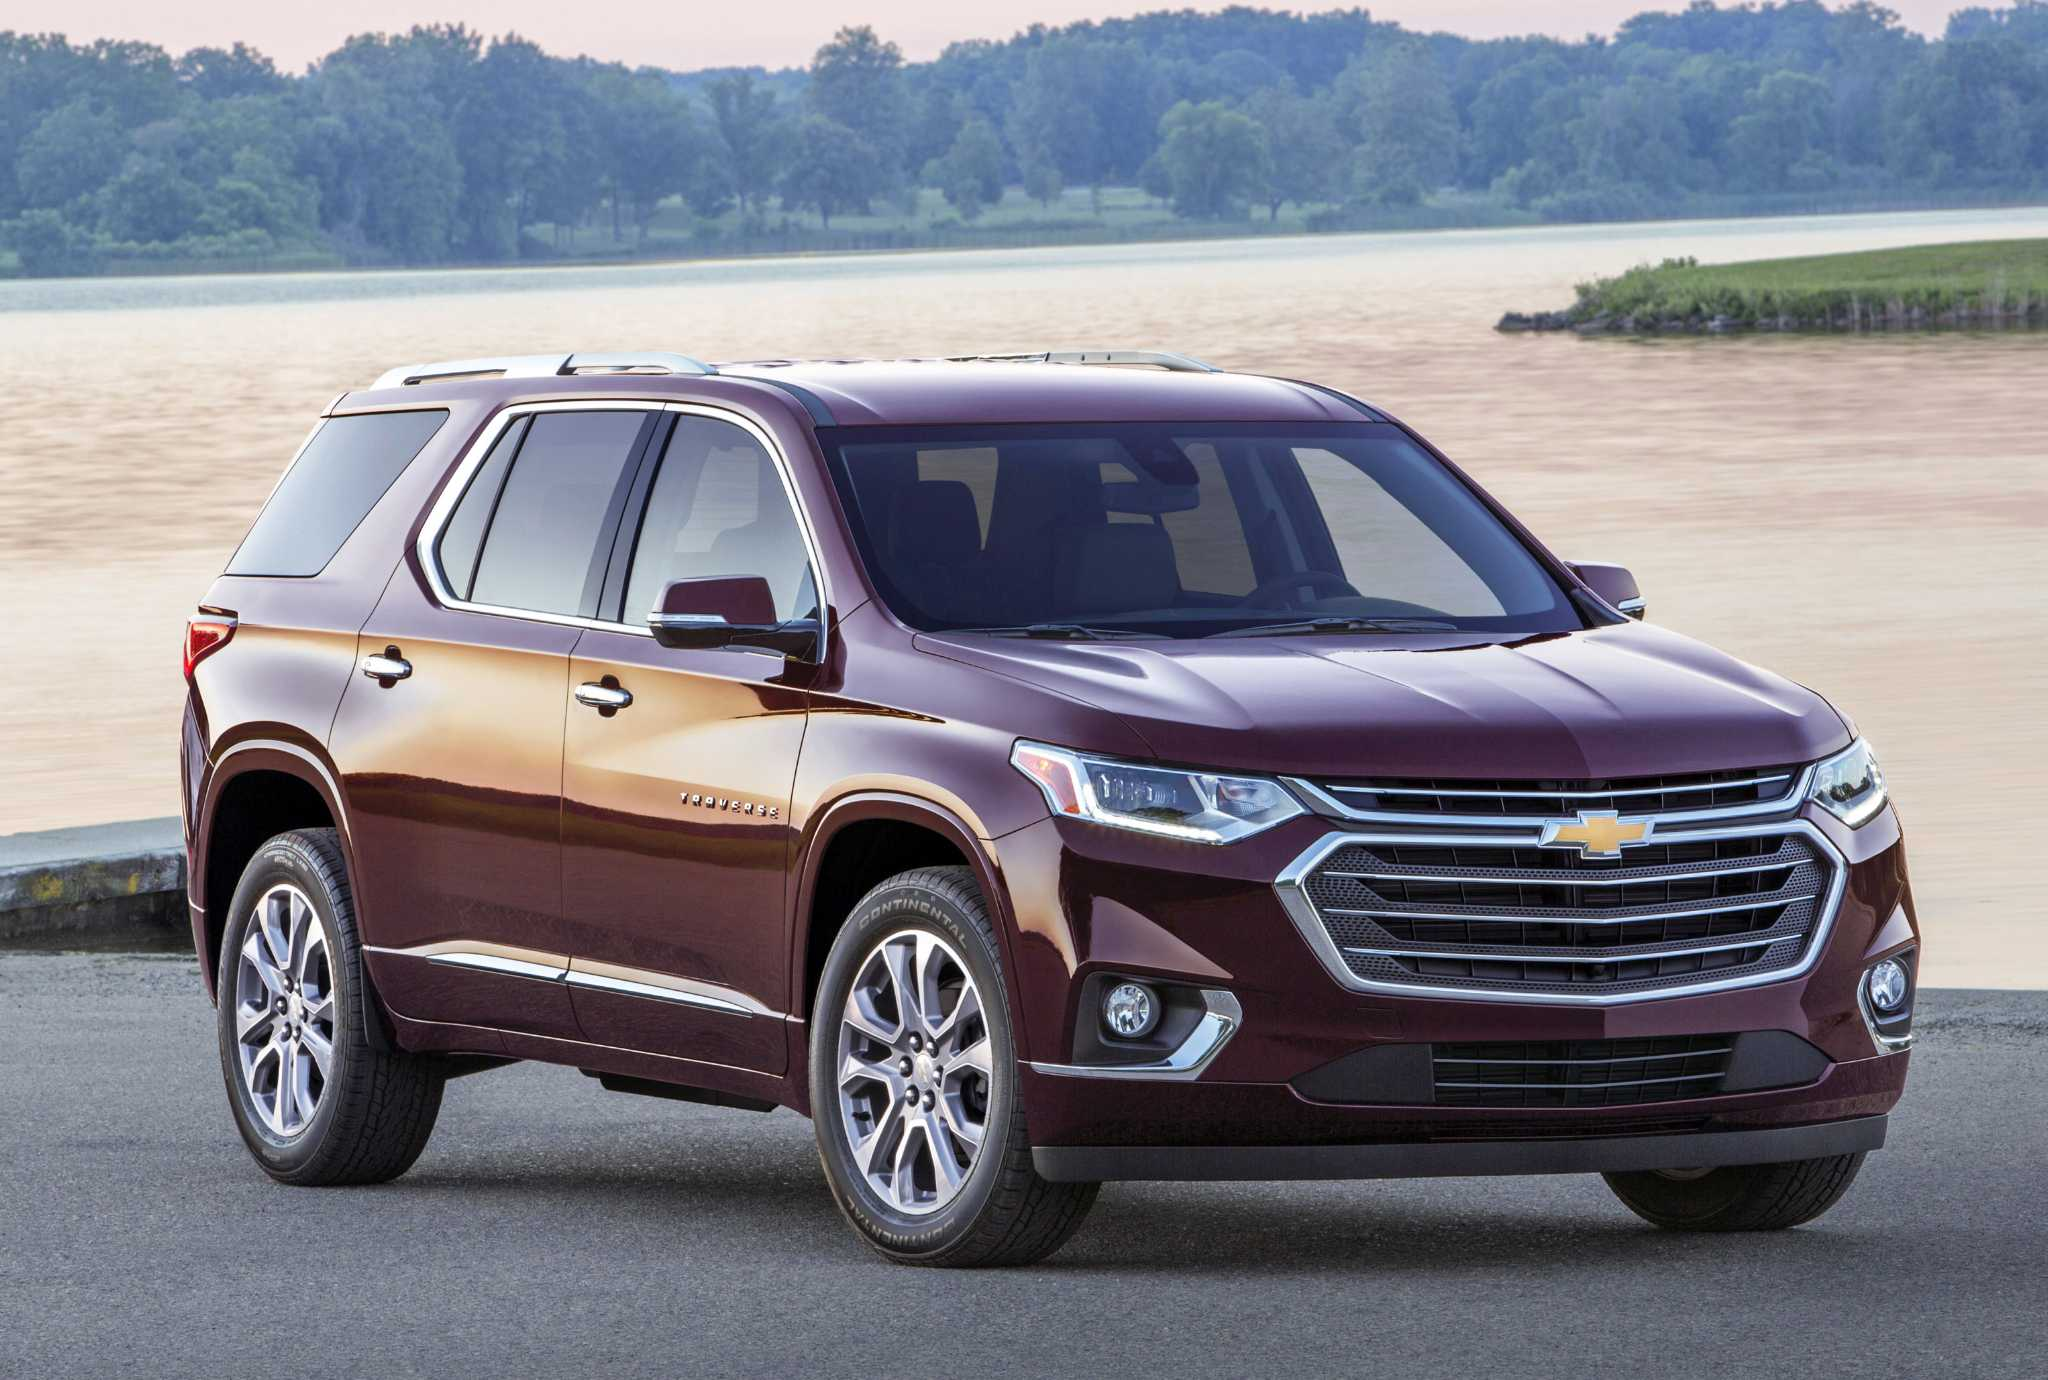 Chevrolet Traverse 2018 model s a makeover still a great choice